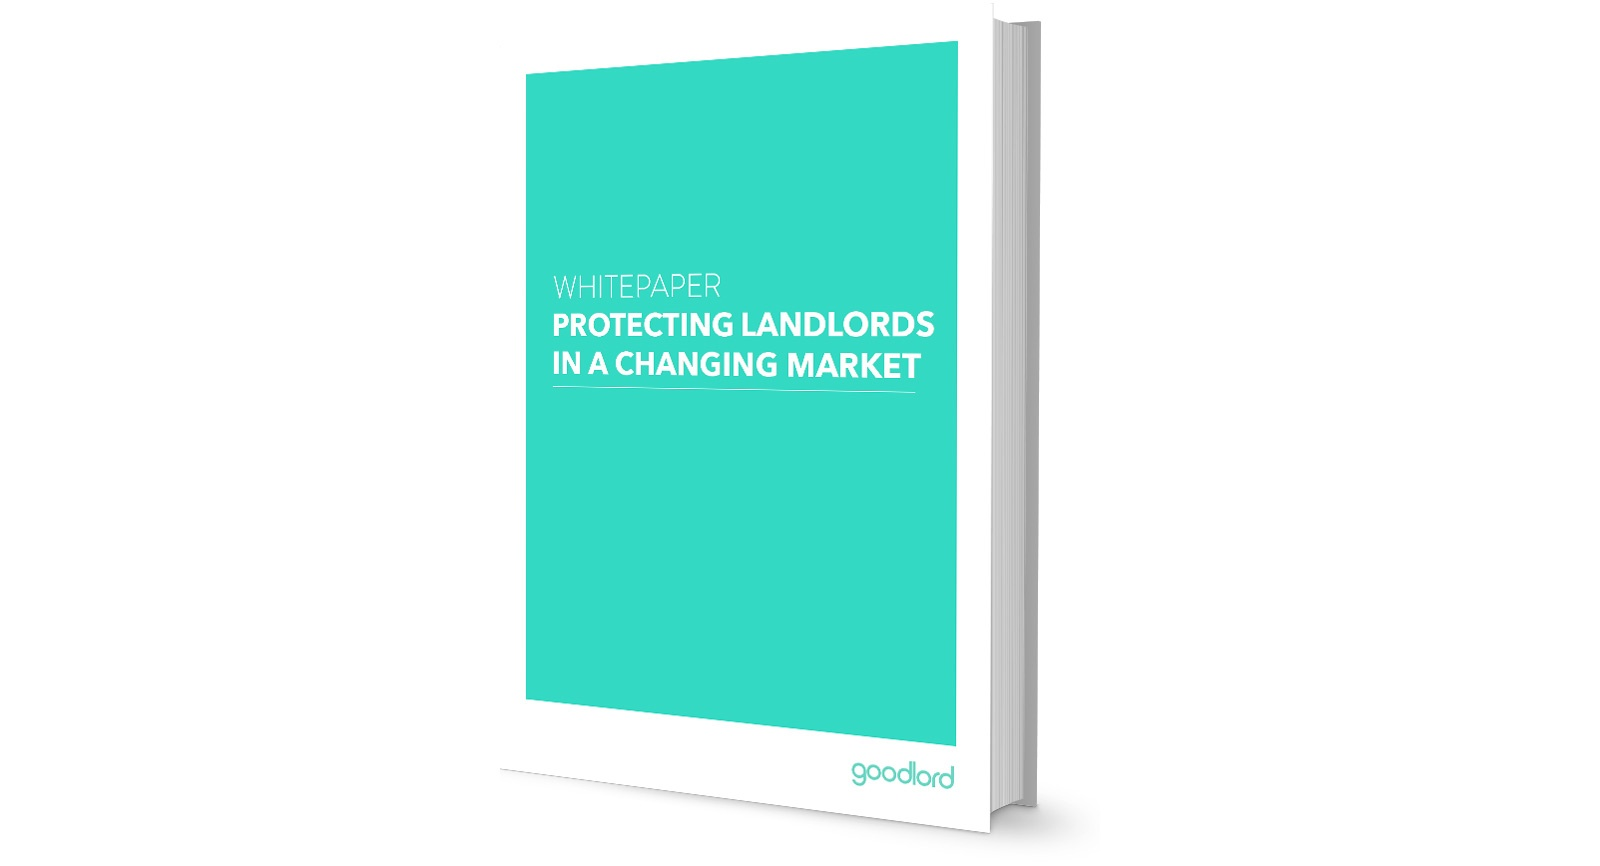 whitepaper-protecting-landlords-in-a-changing-market